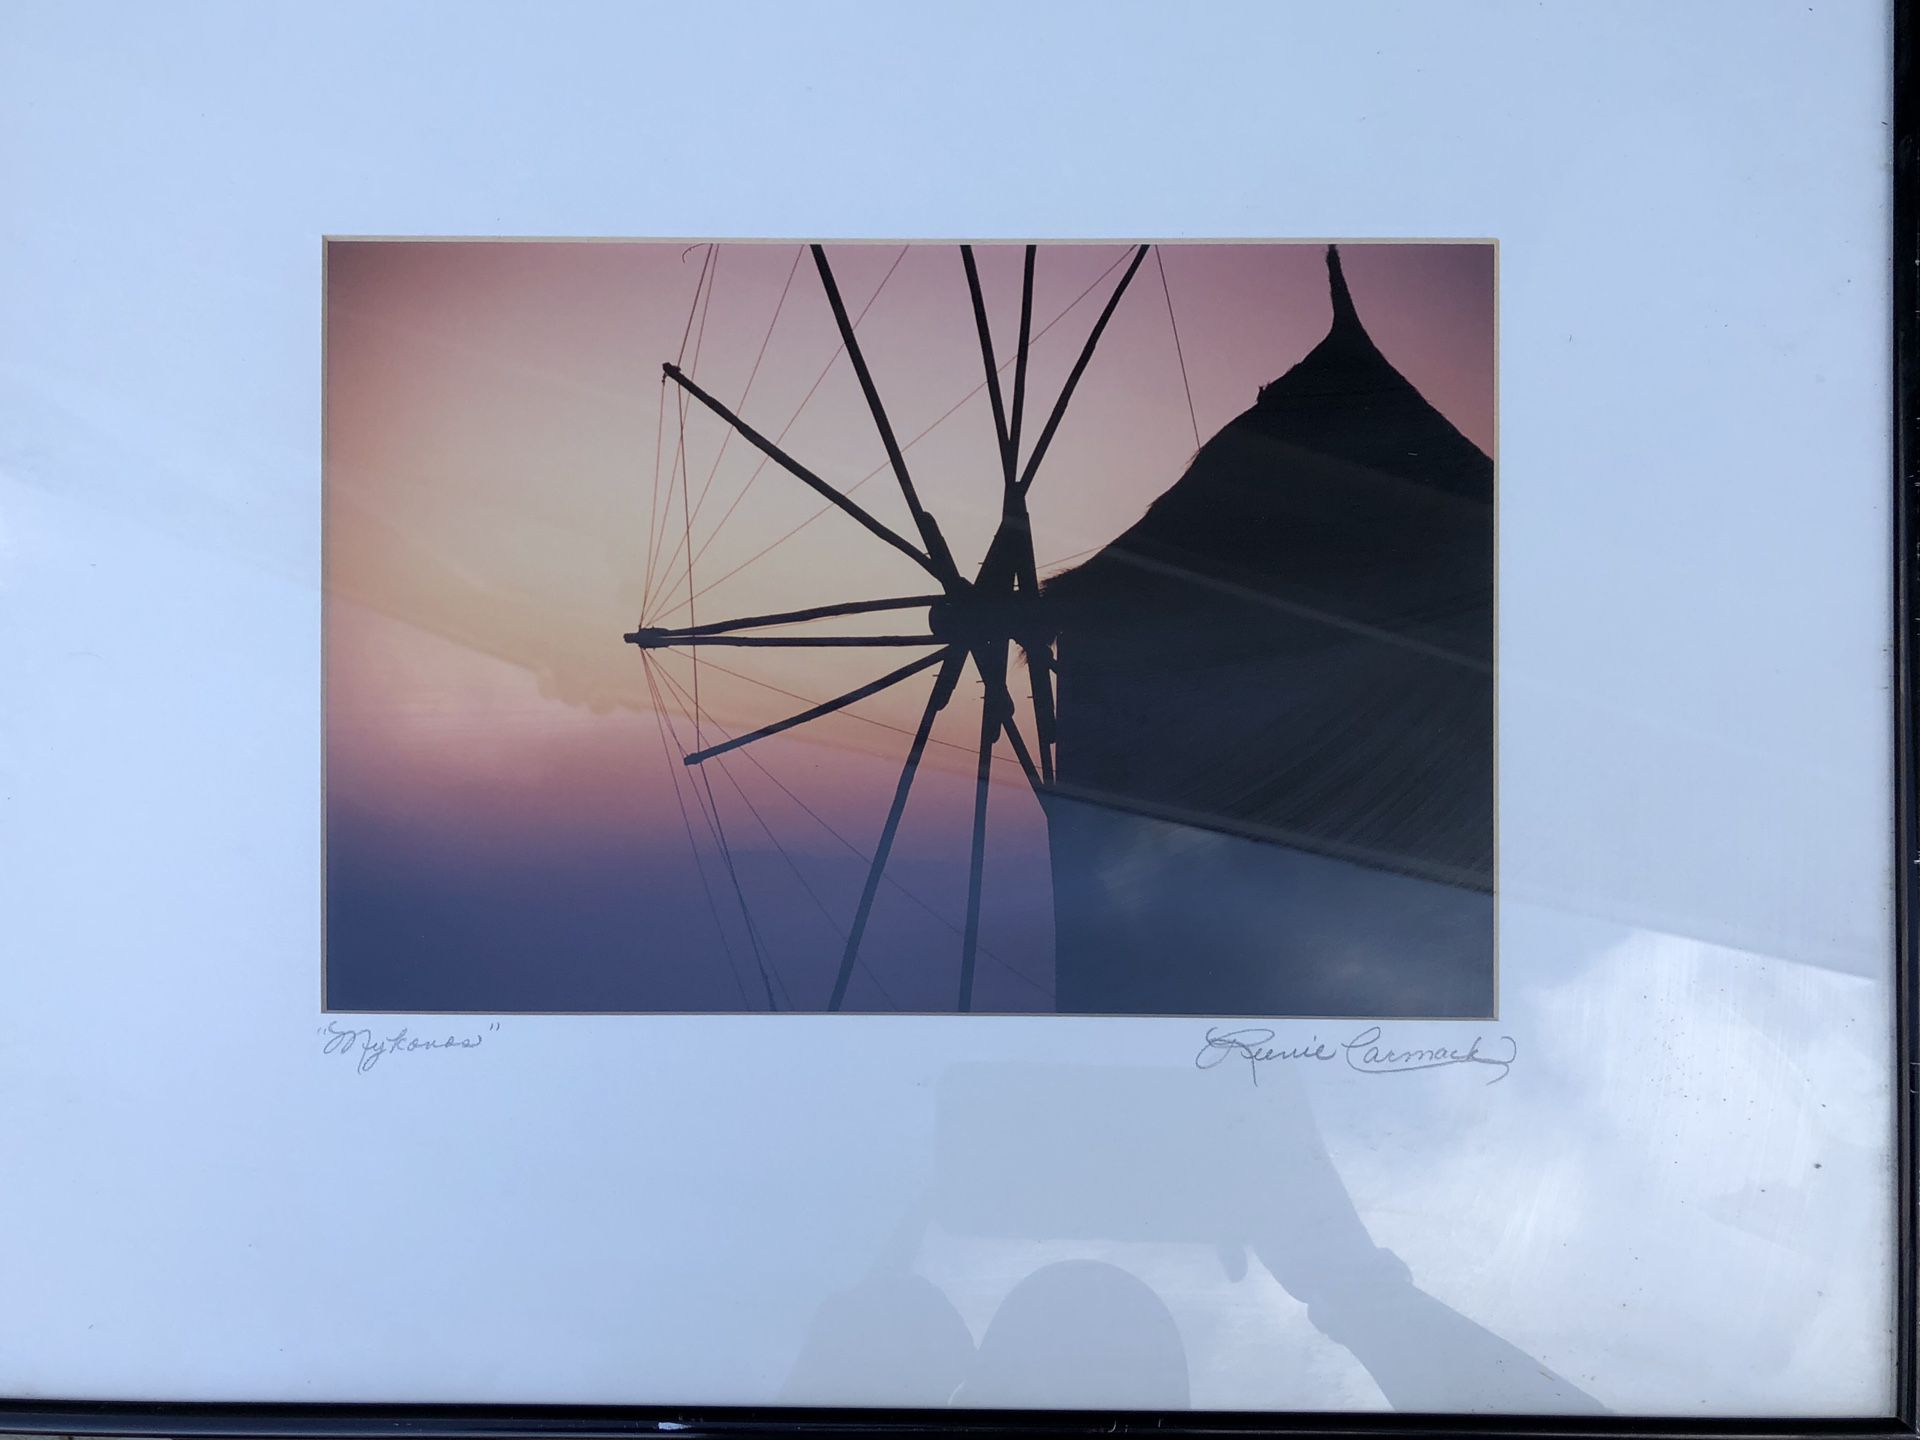 Two original photo art pieces signed by artist